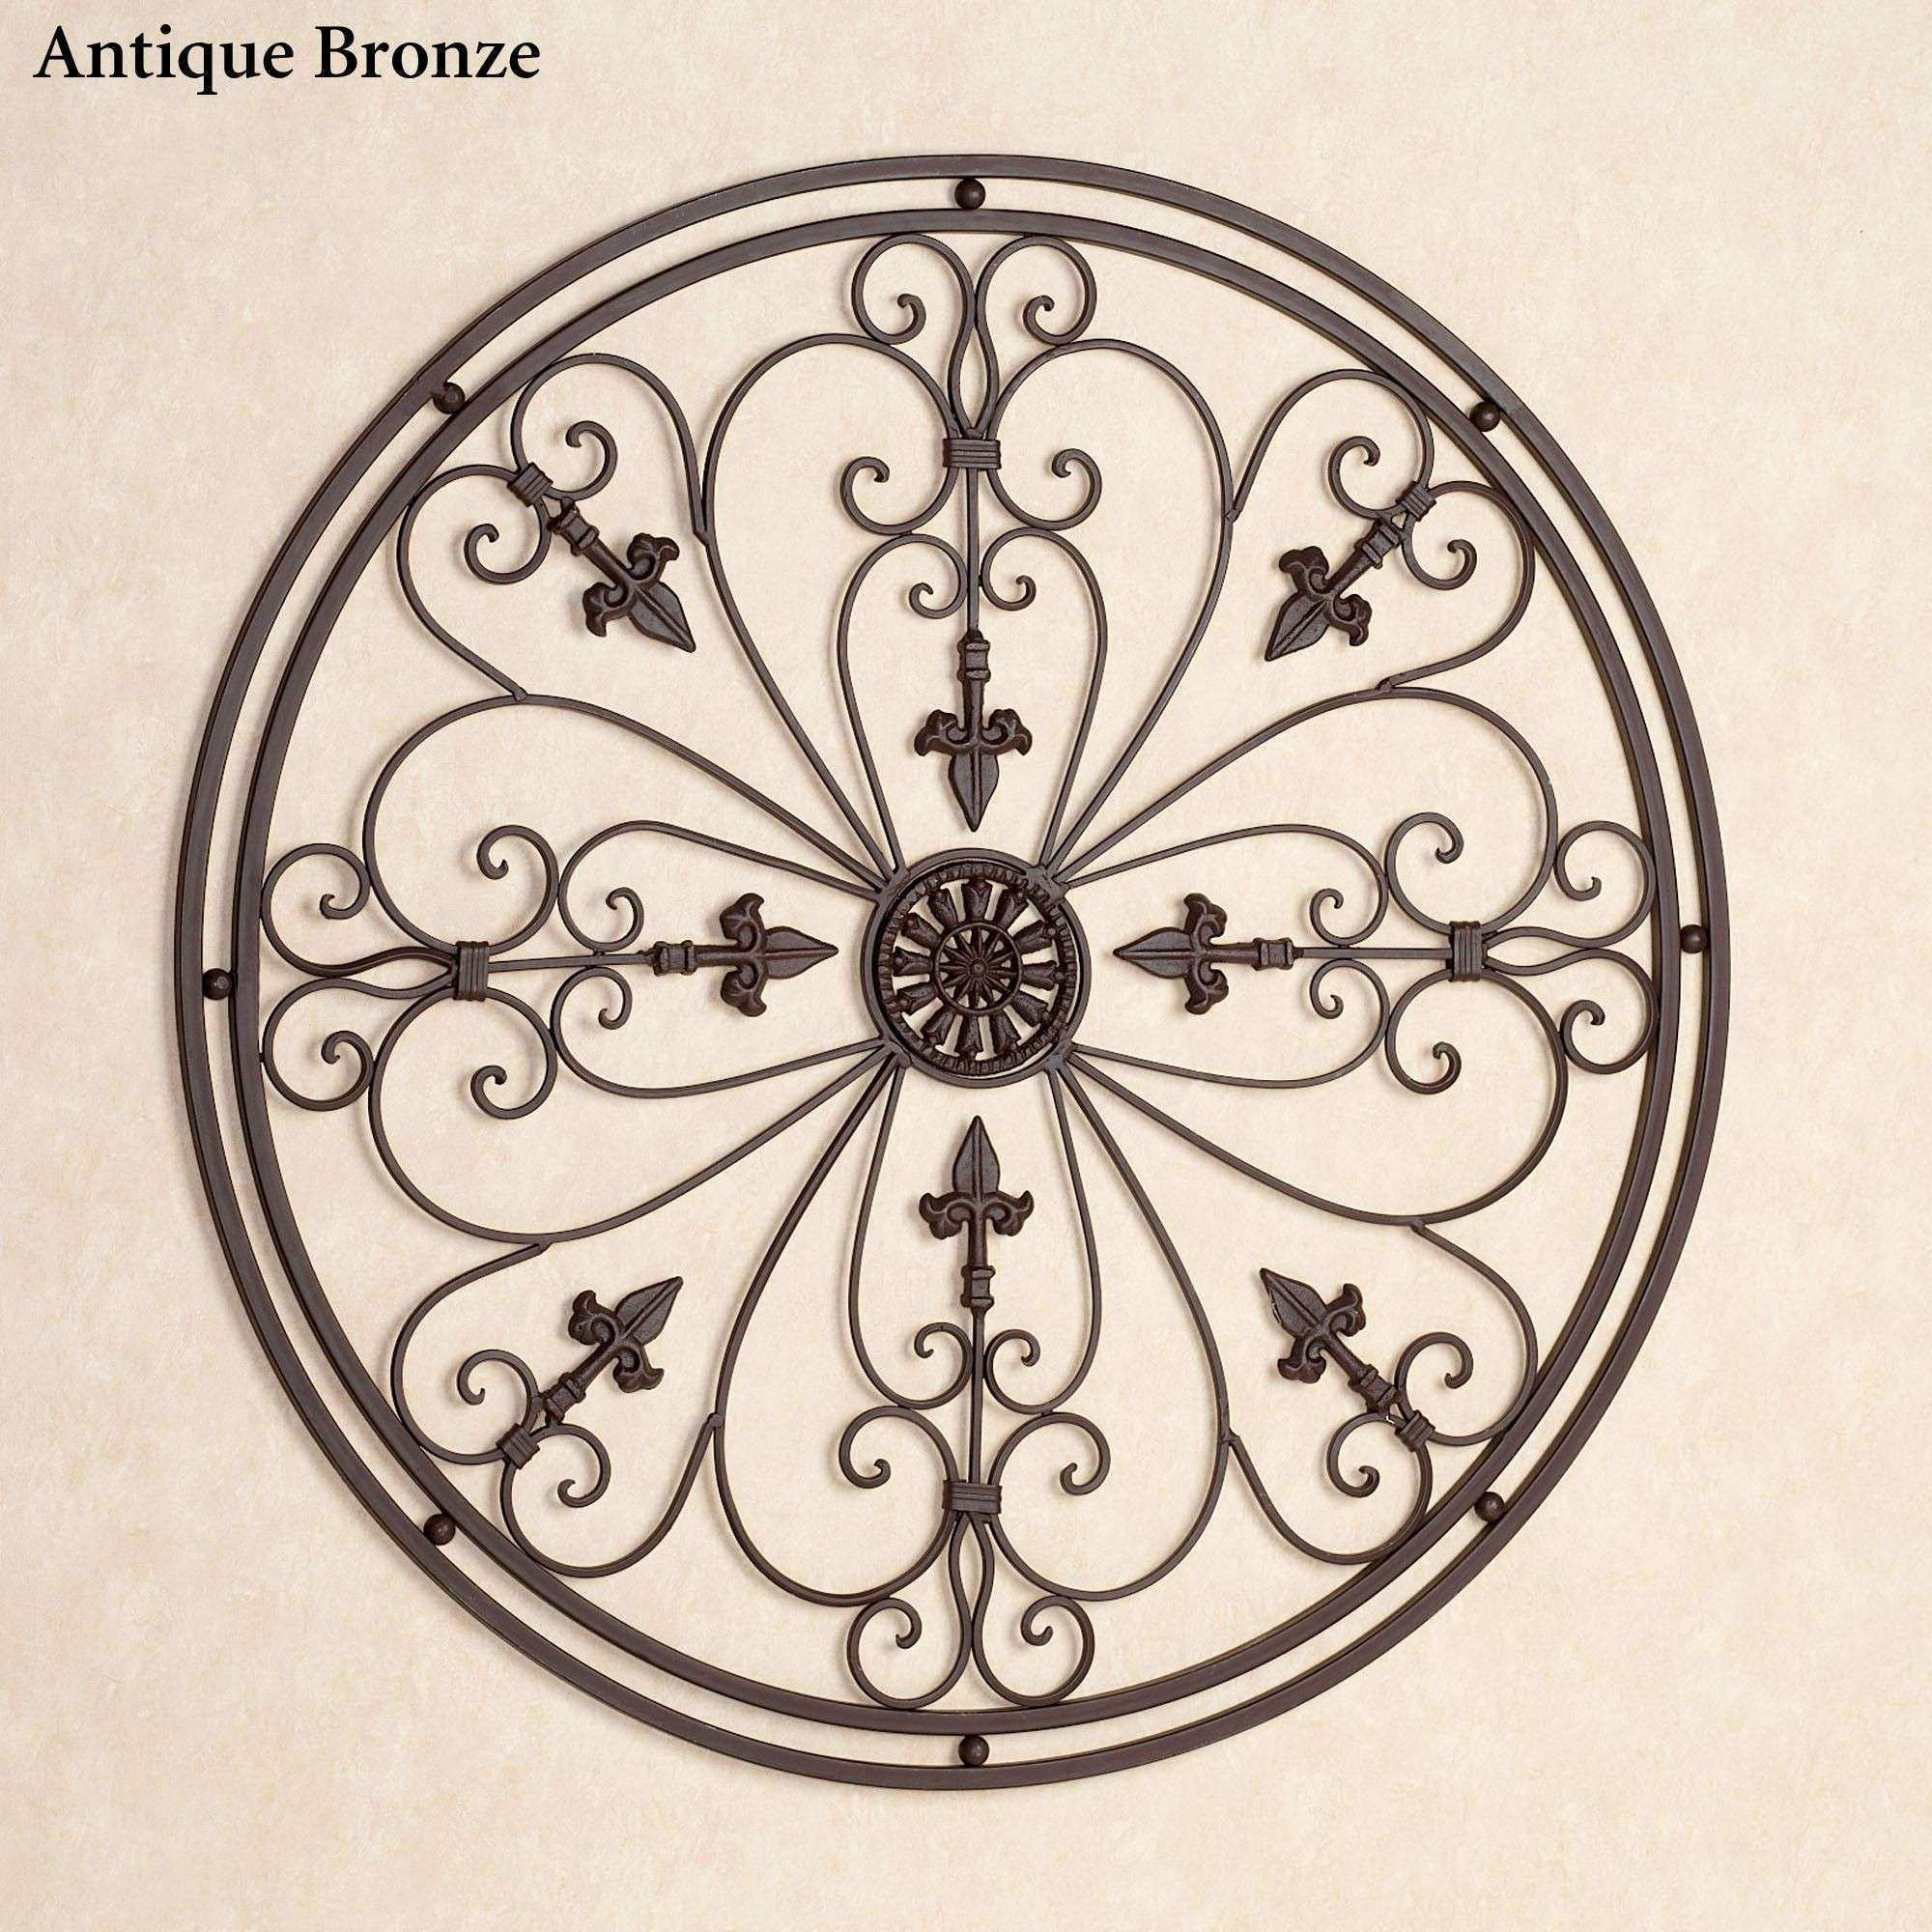 Large Wrought Iron Wall Decor Awesome Wrought Iron Wall Decor Metal Throughout Wrought Iron Wall Art (View 18 of 20)